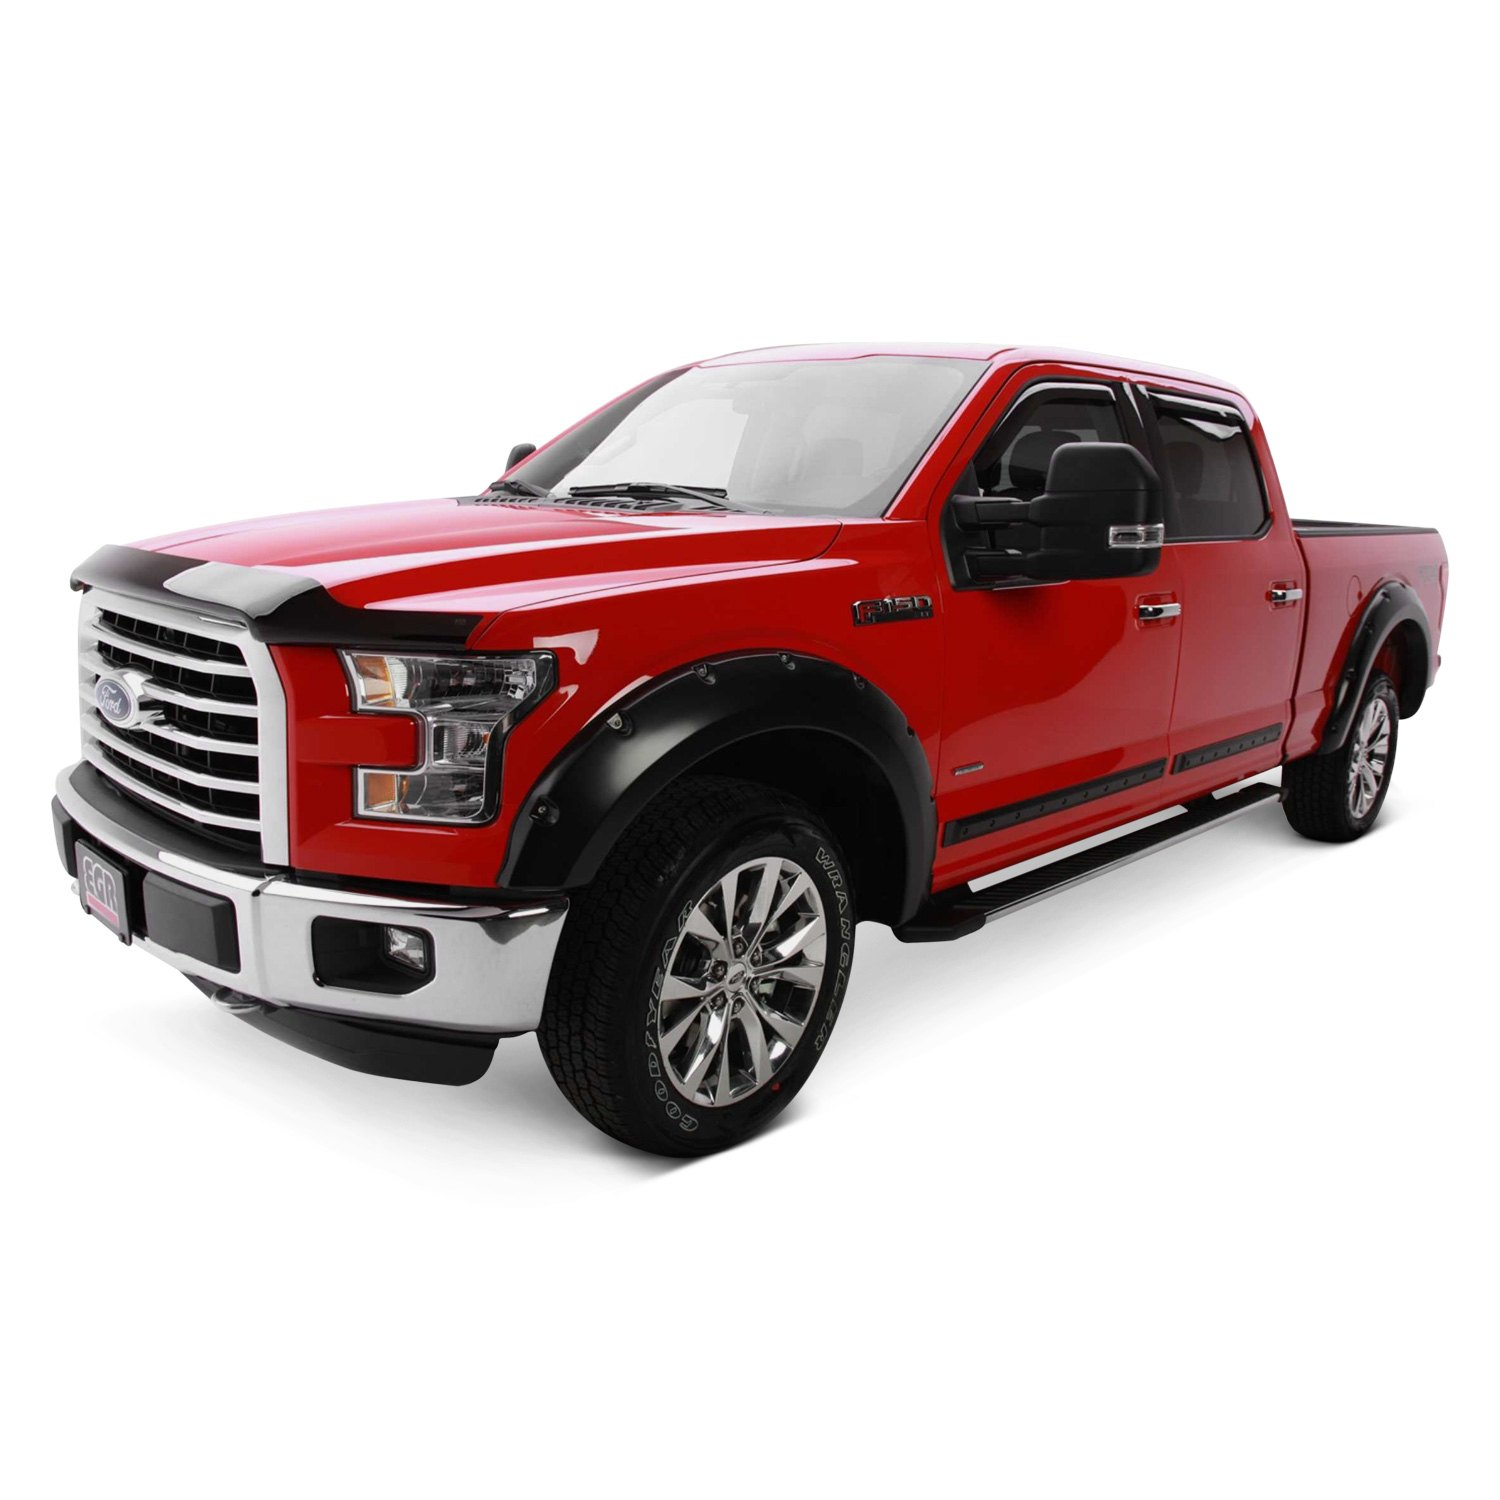 egr ford f 150 2006 bolt on style fender flares. Black Bedroom Furniture Sets. Home Design Ideas